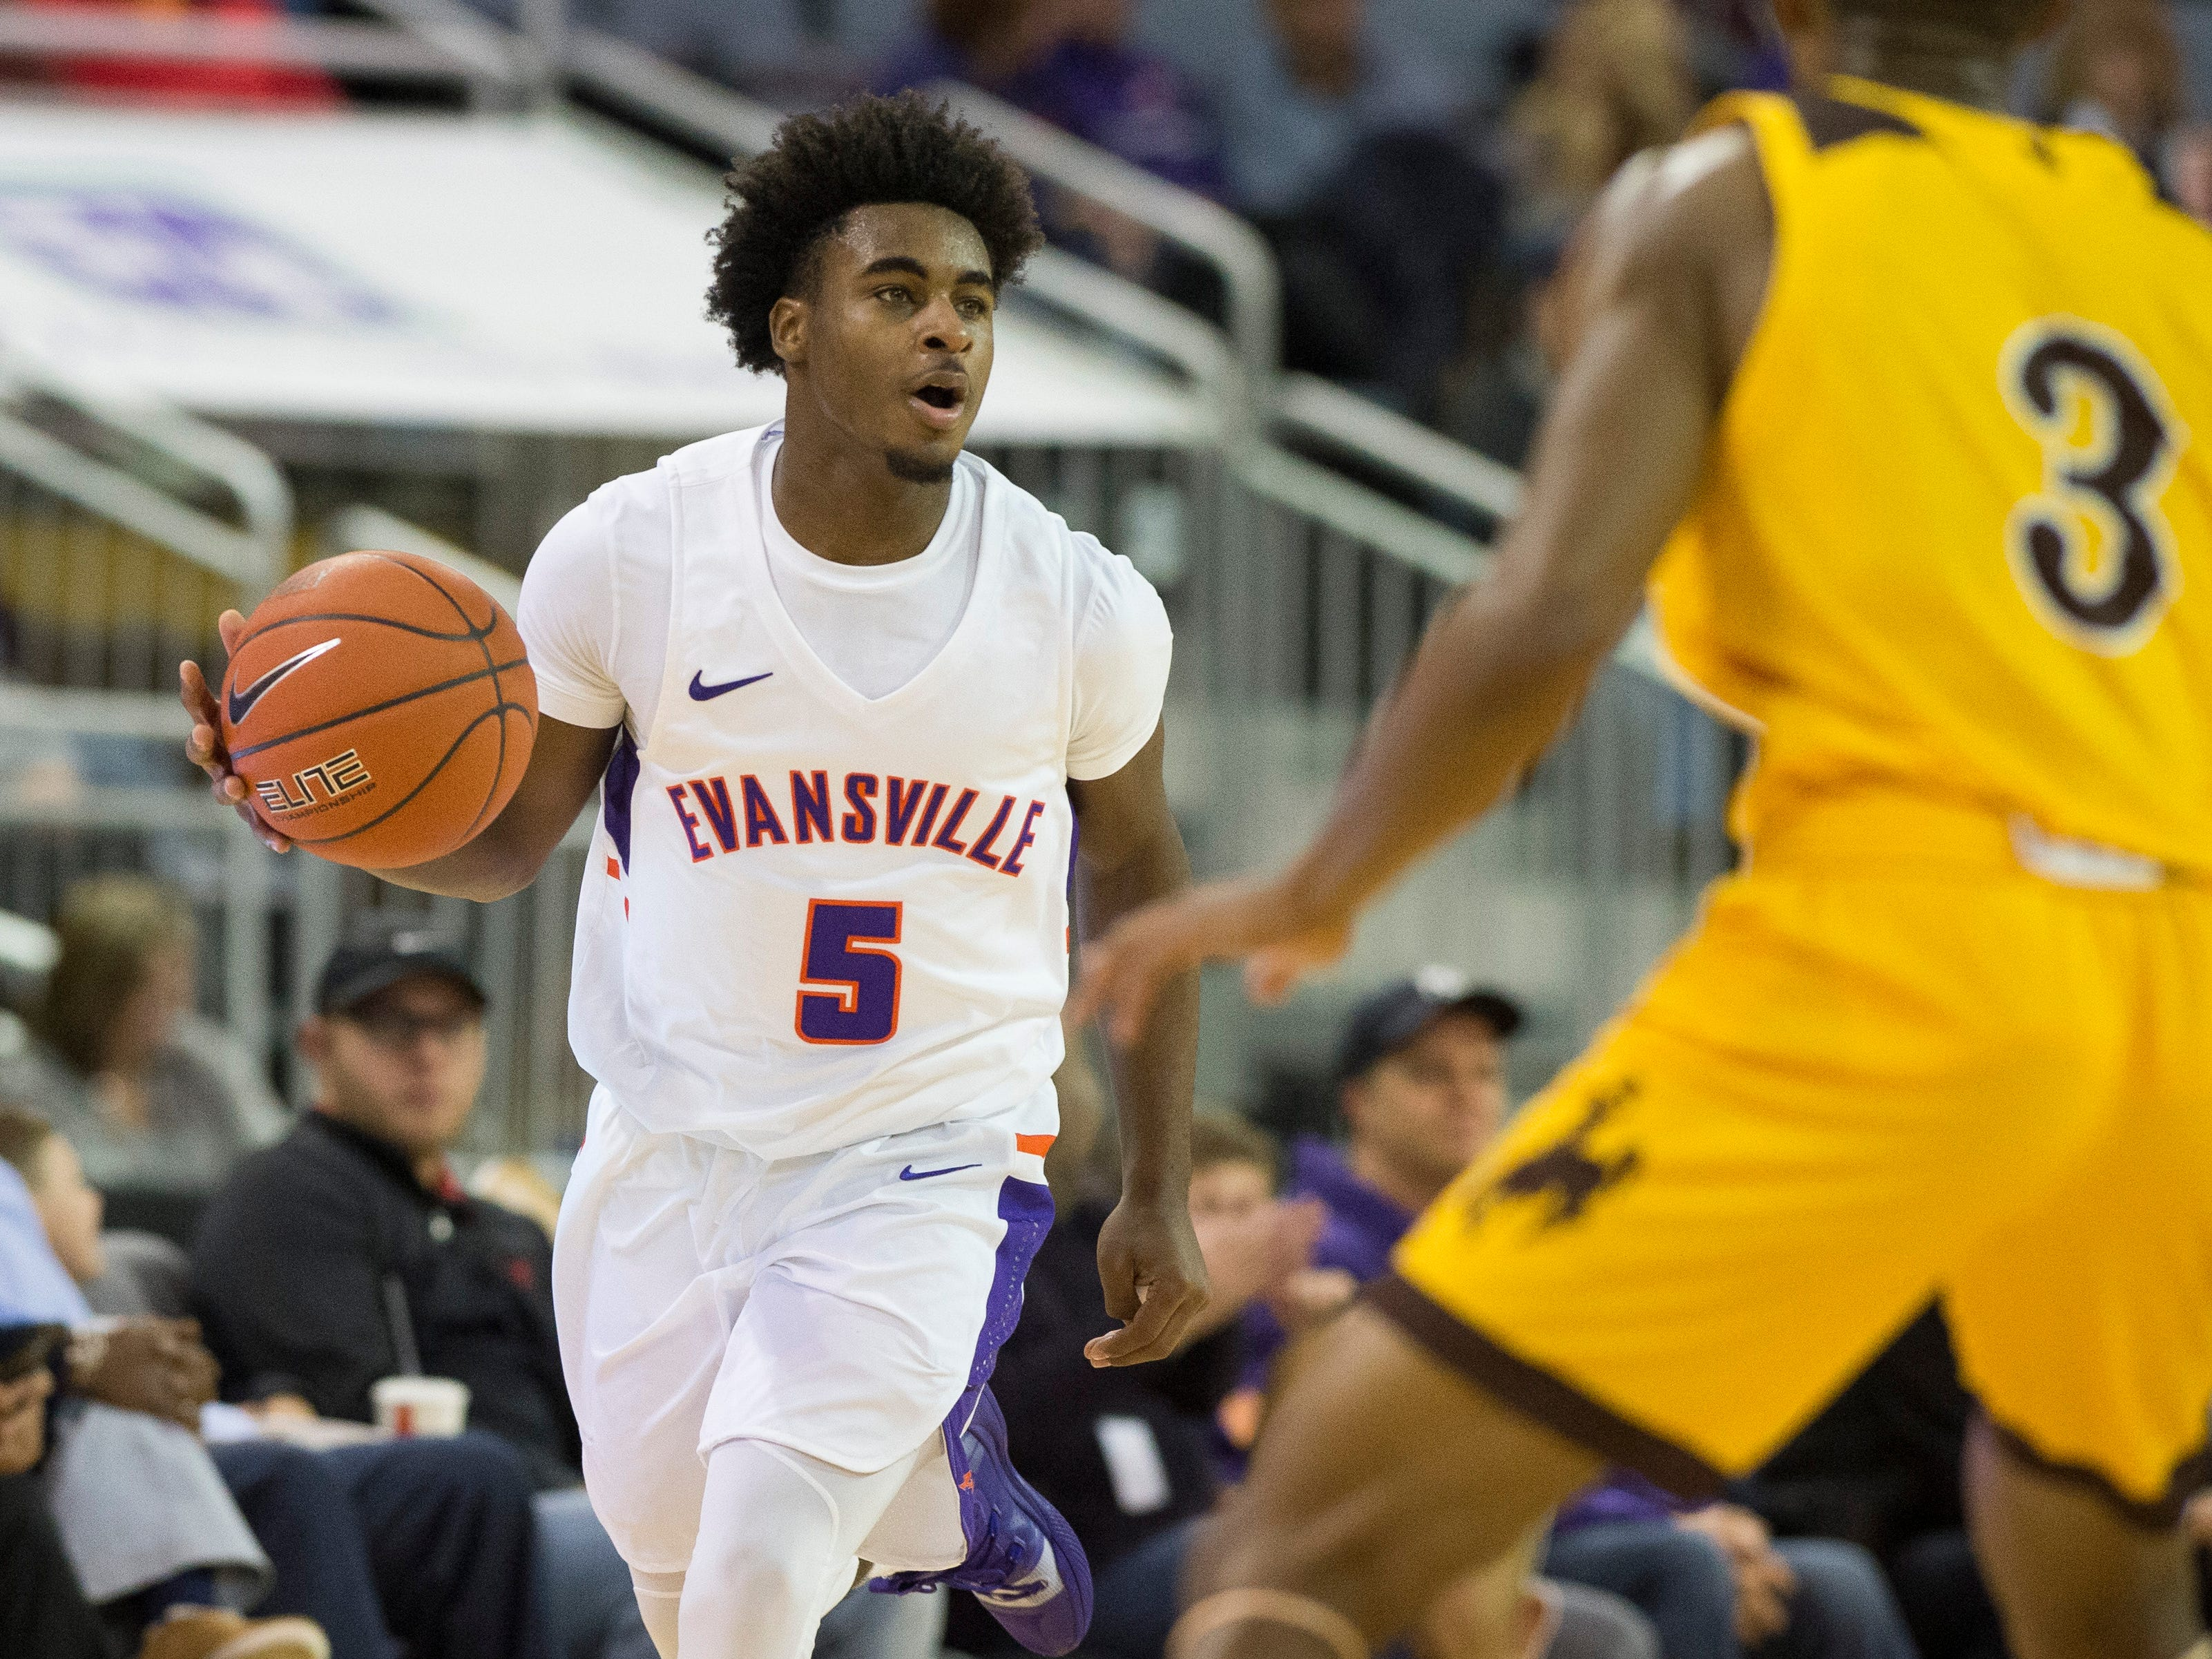 UE's Shamar Givance (5) dribbles the ball during the UE vs Wyoming game at the Ford Center Wednesday, Nov. 28, 2018. UE won 86-76.